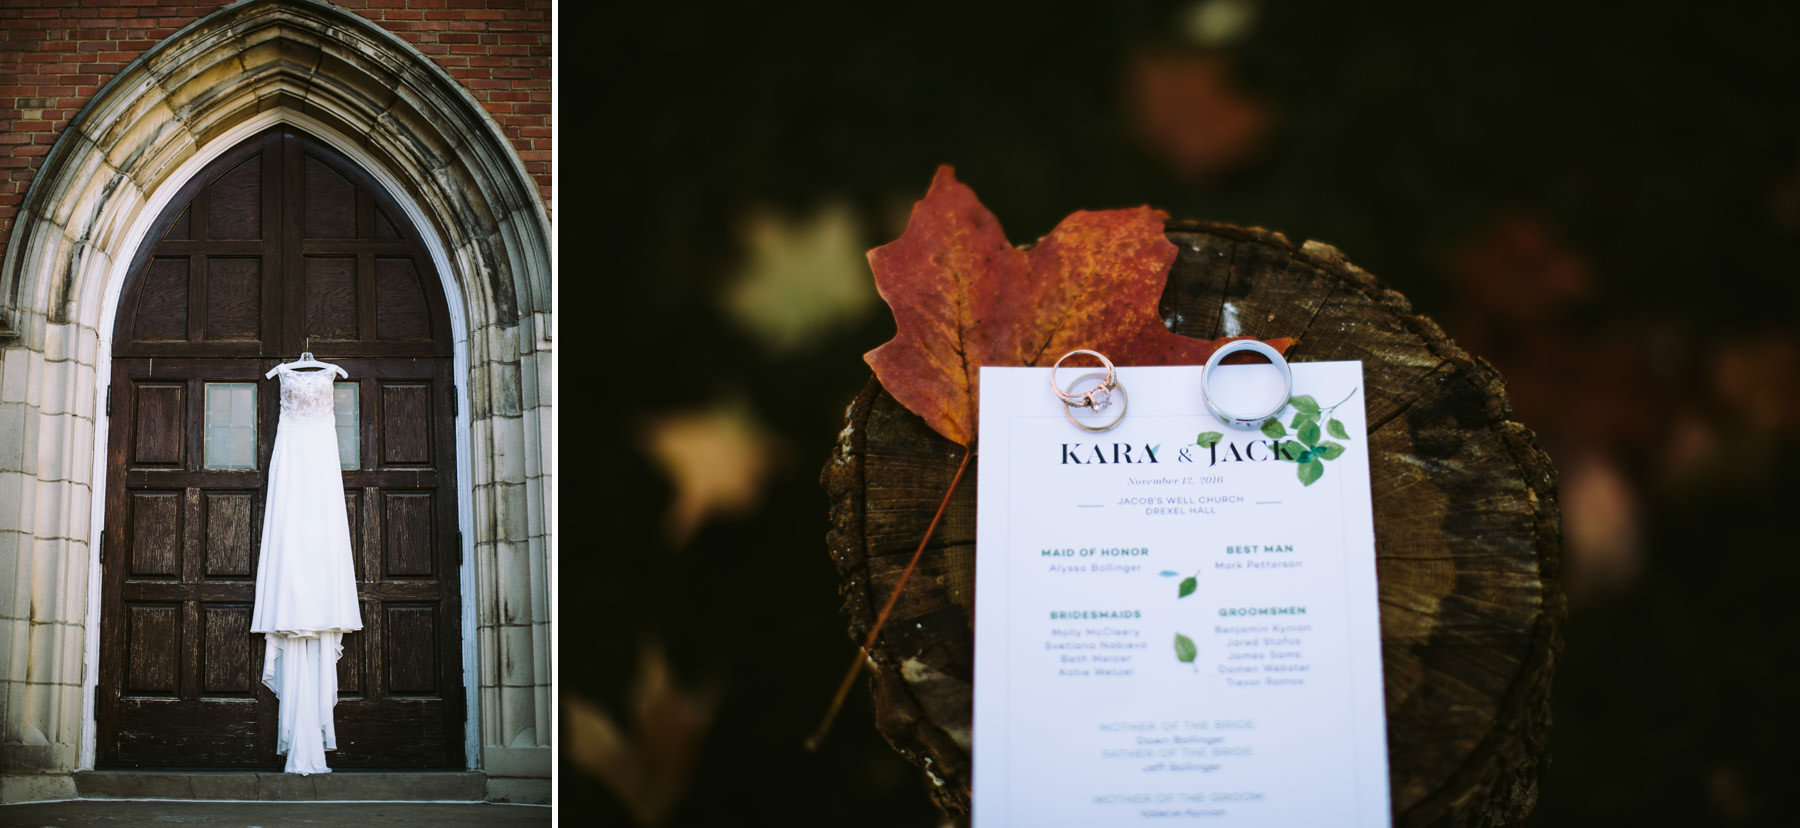 31_Jacob's Well Church Drexel Hall Fall Wedding Kansas City, Missouri_Kindling Wedding Photography.JPG